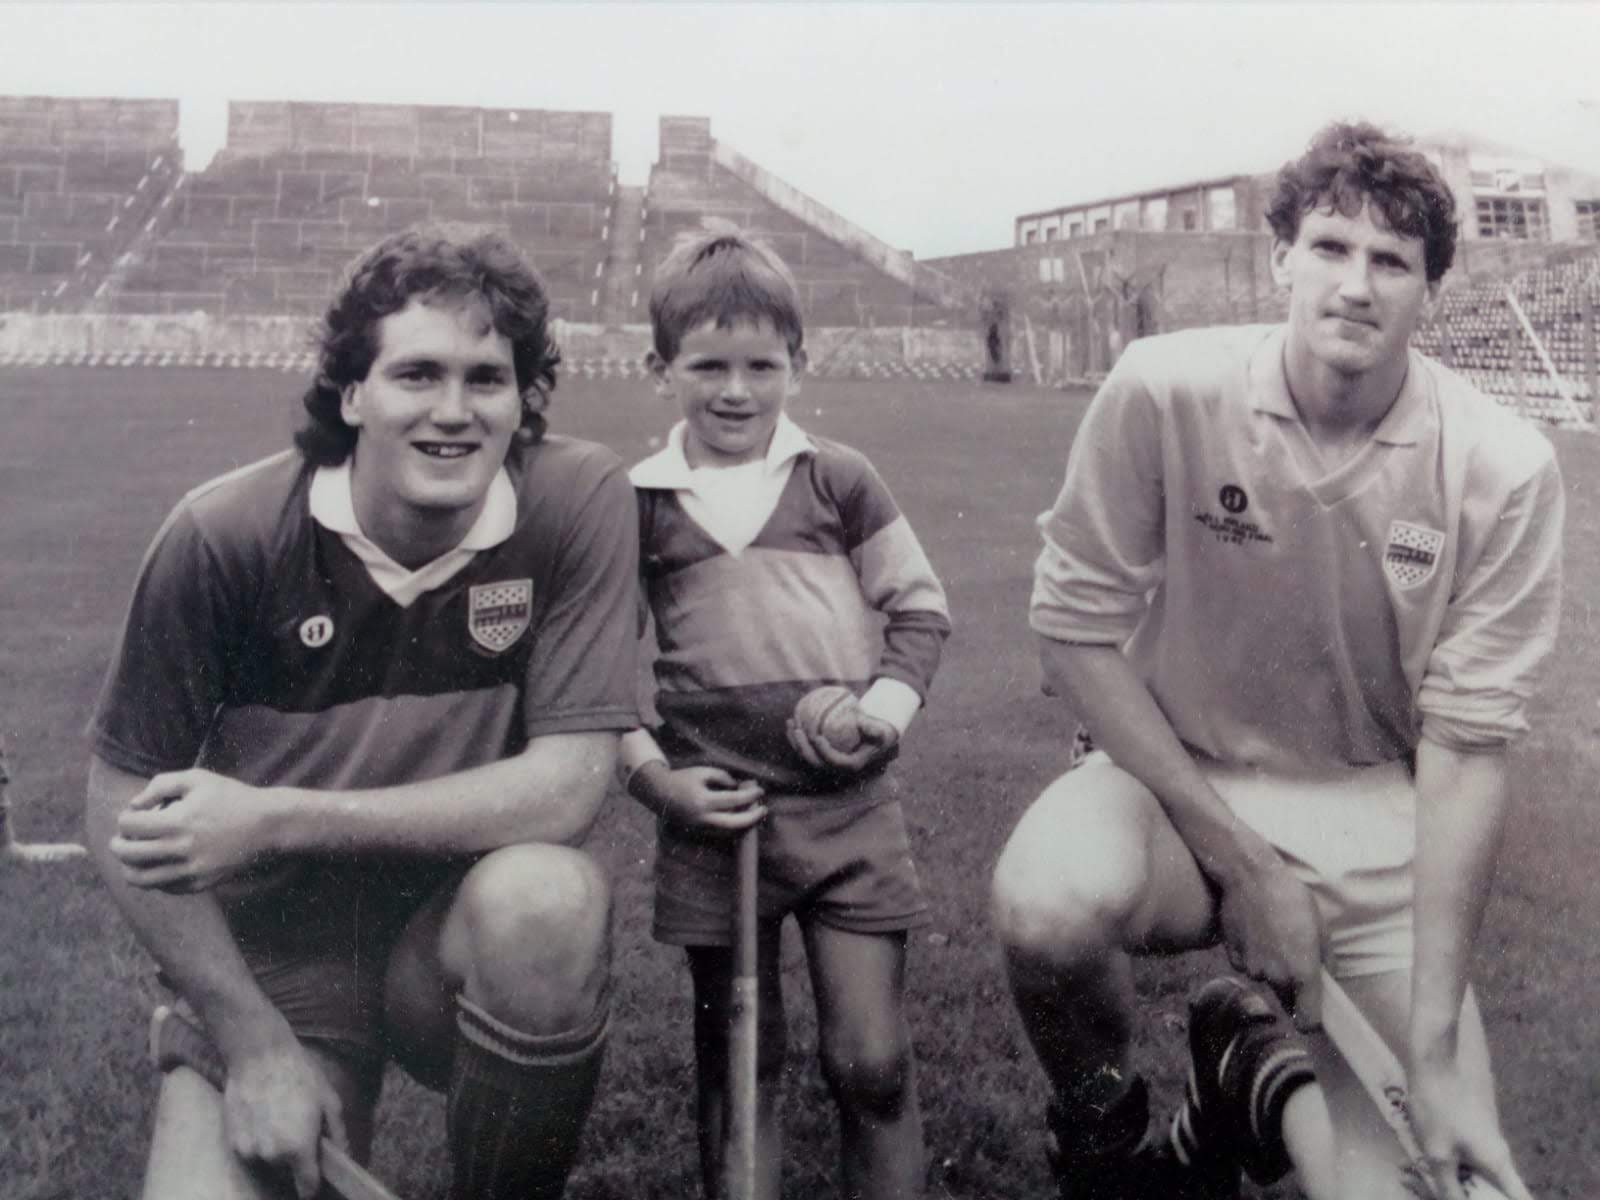 Colm, Darragh & Cathal Egan ahead of the All Ireland Under 21 hurling final in 1990